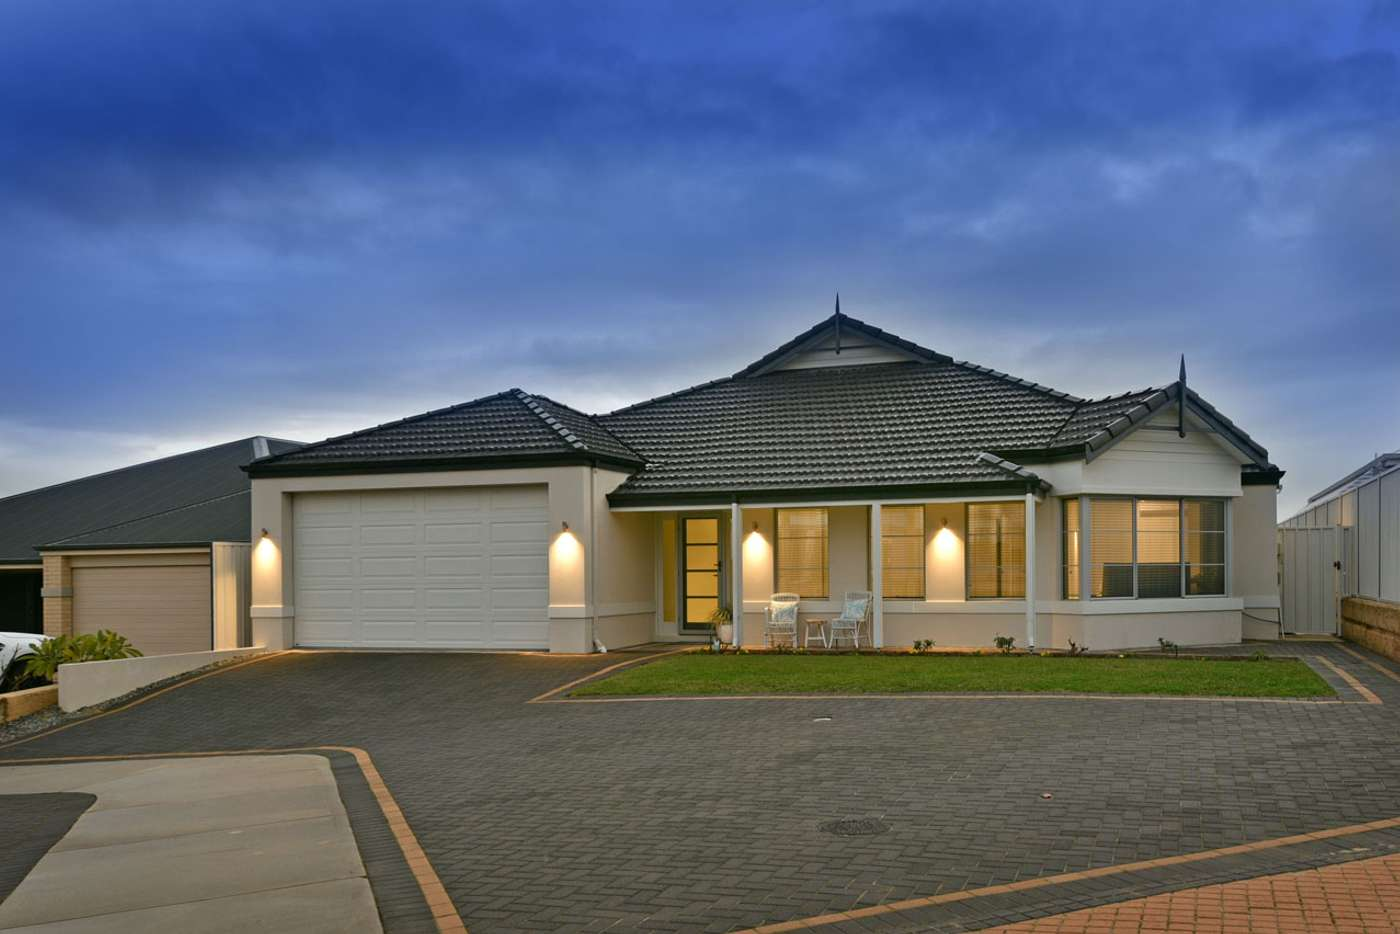 Main view of Homely house listing, 3 Scarlet Close, Tapping WA 6065